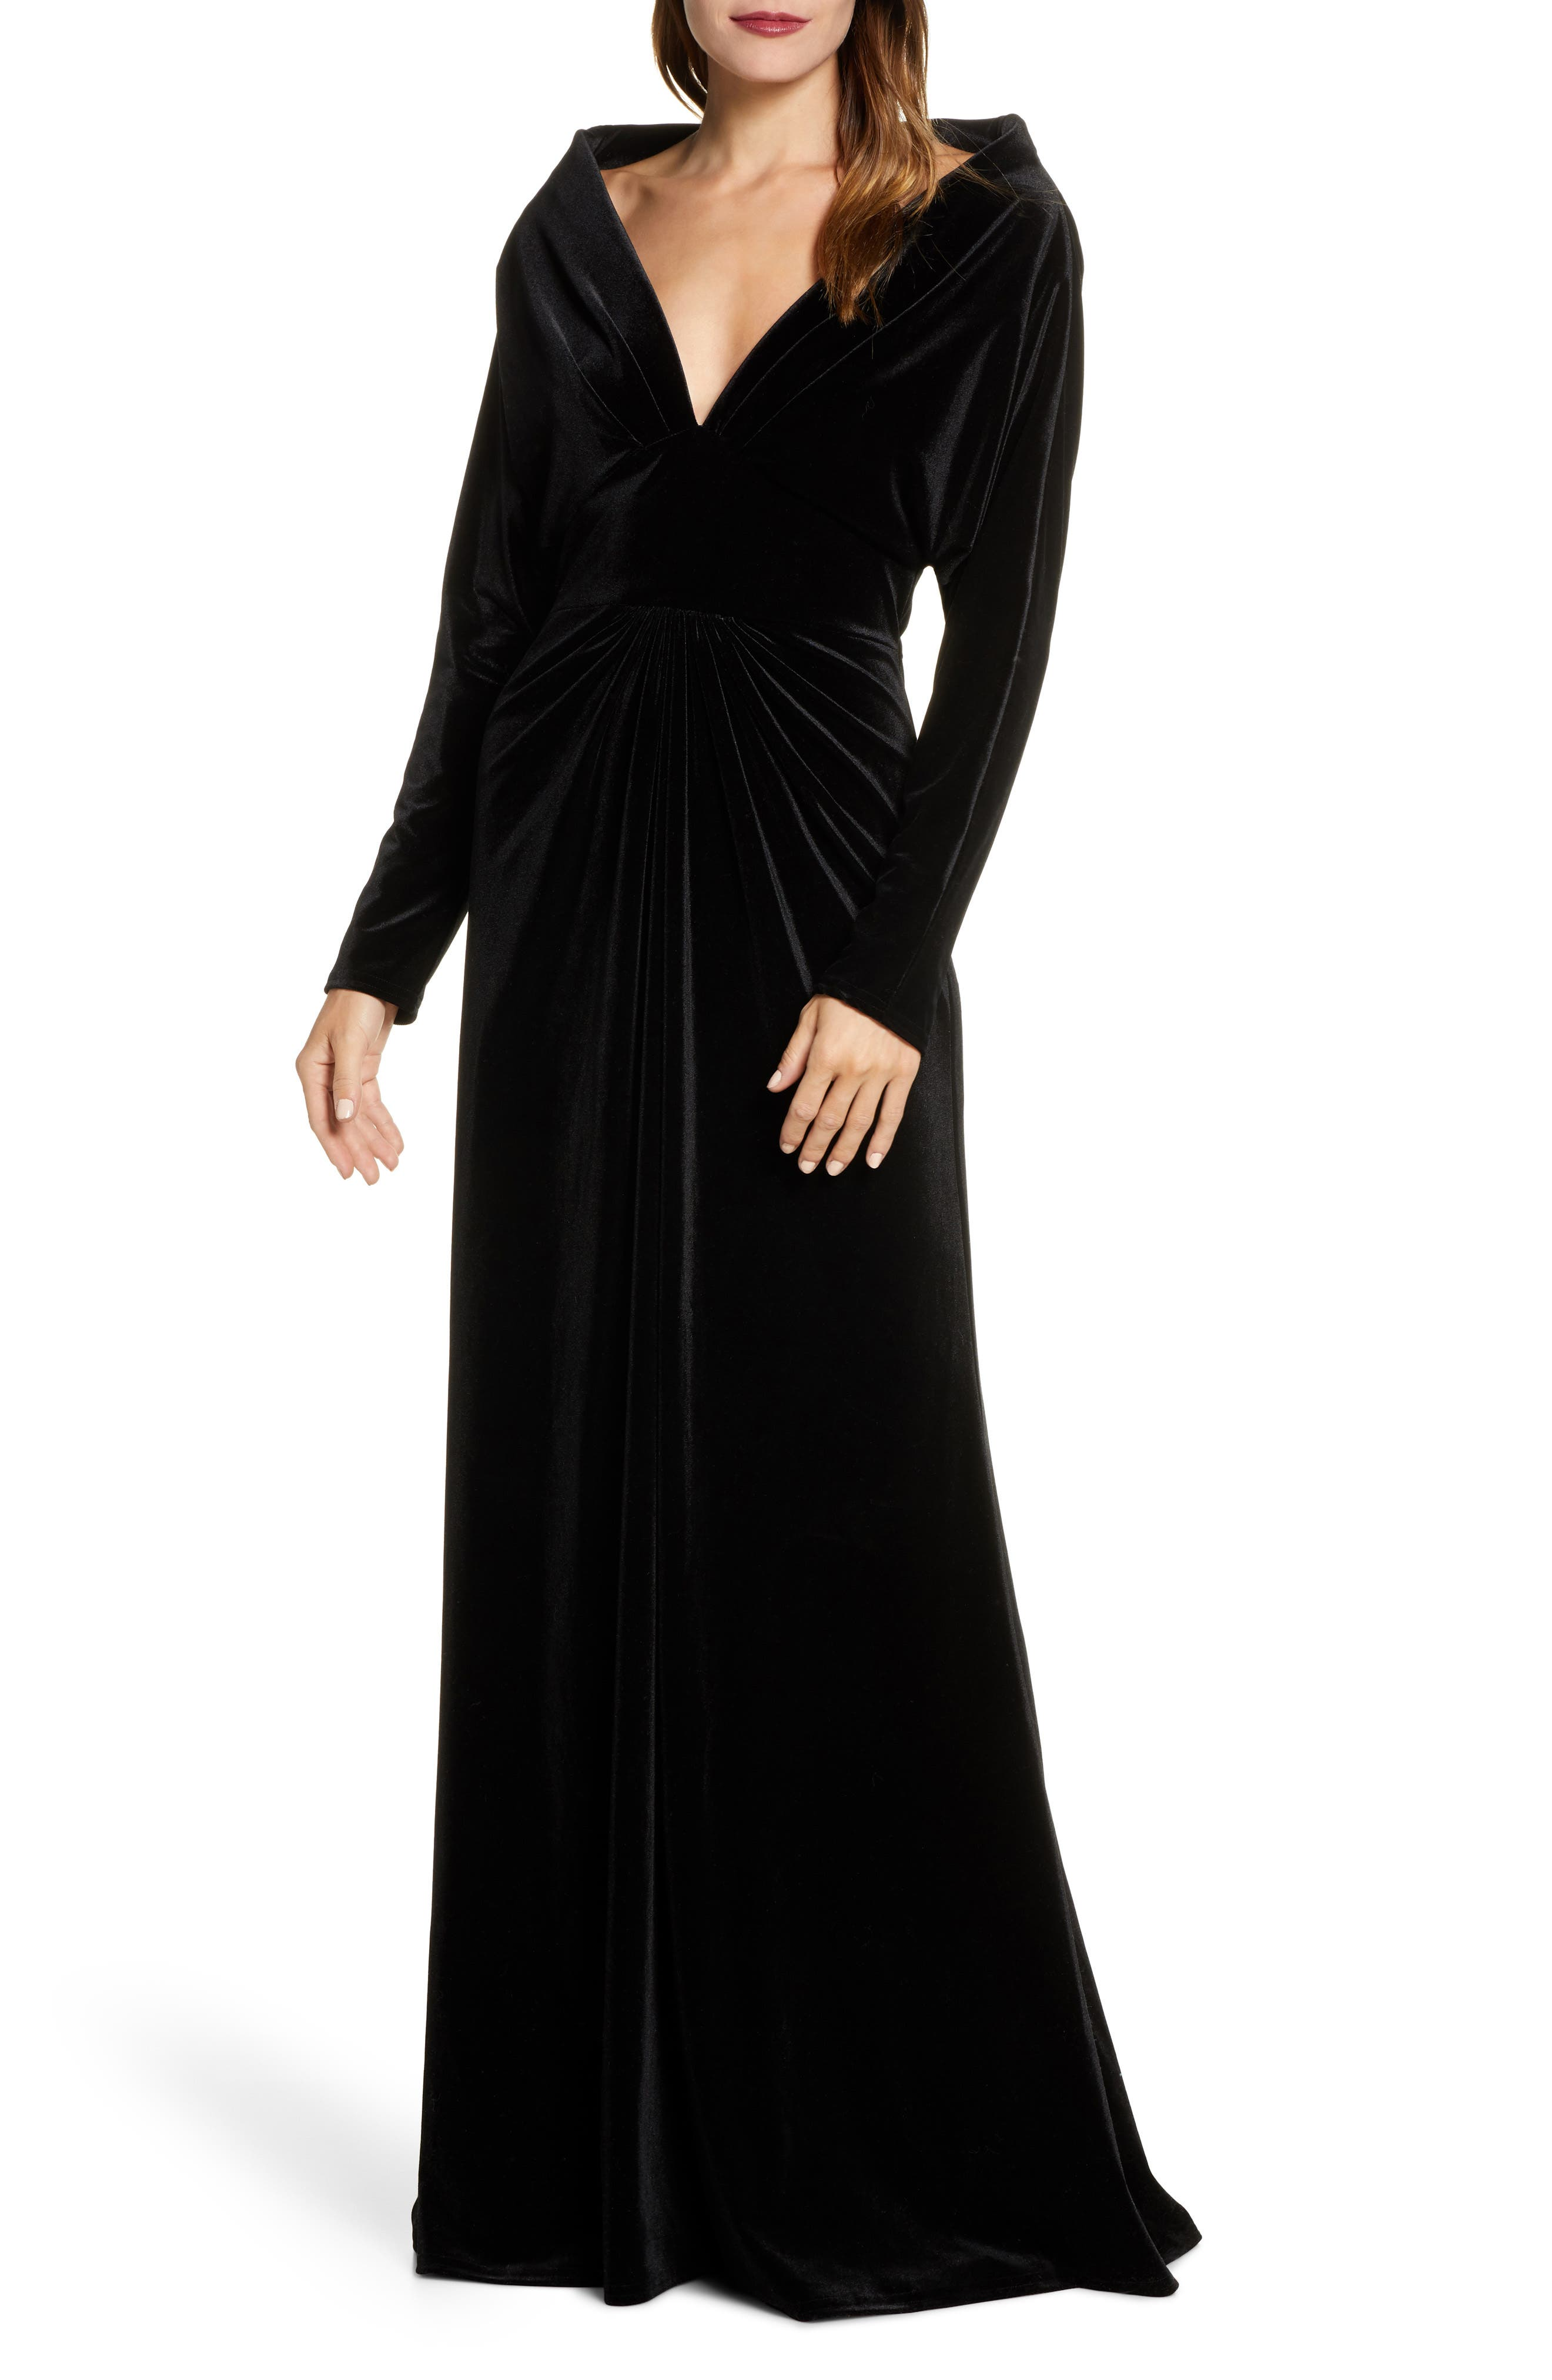 1940s Evening, Prom, Party, Formal, Ball Gowns Womens Tadashi Shoji Plunge Neck Long Sleeve Velvet Evening Gown $398.00 AT vintagedancer.com